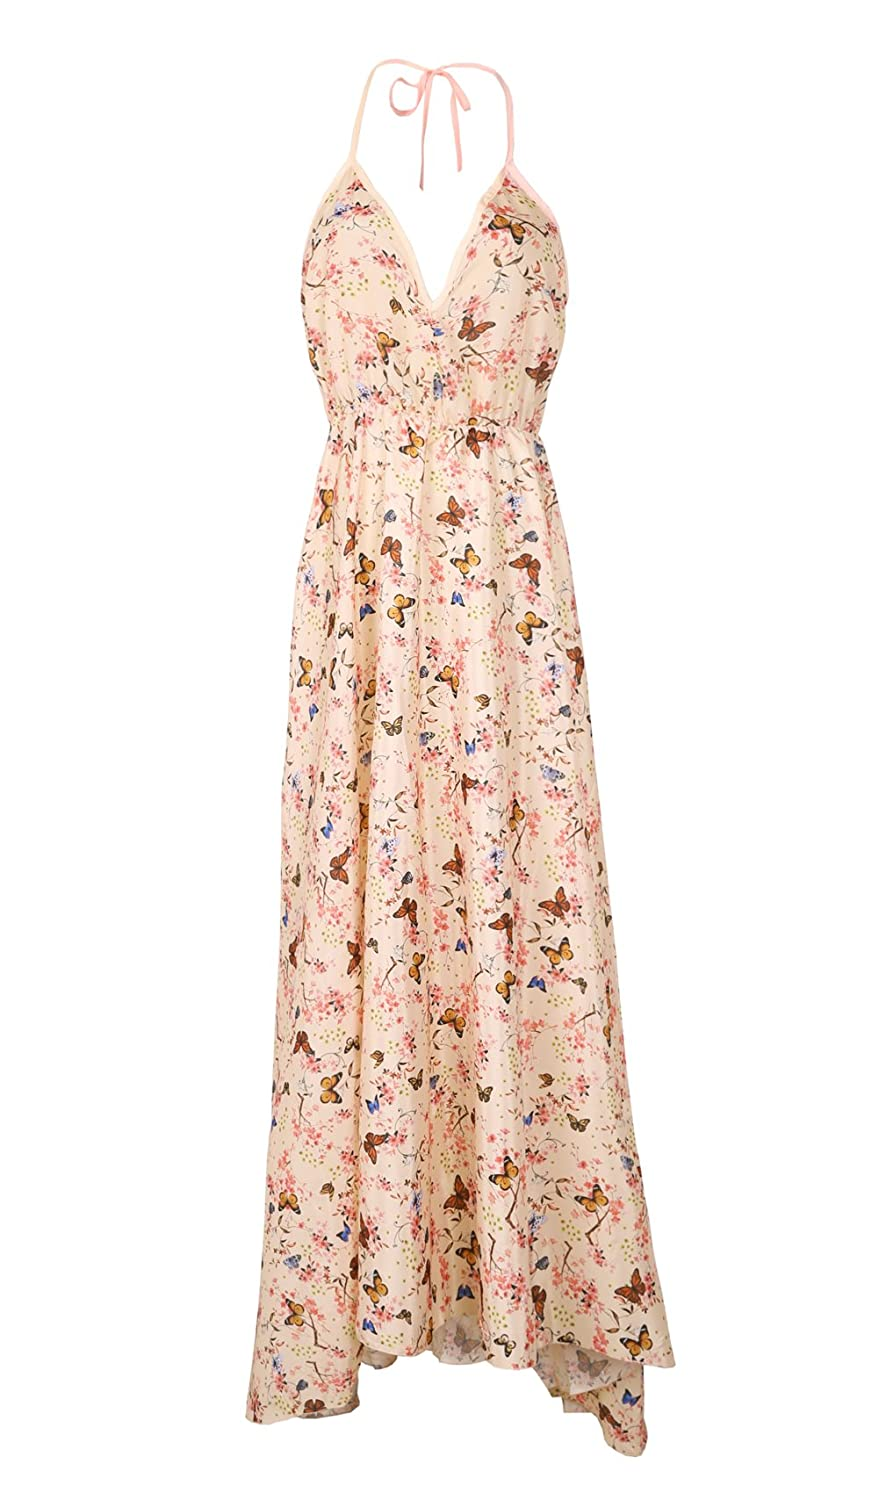 a9f35e1df0 Amazon.com: Imcute Women Casual Dress One Piece Halterneck Floral Butterfly  Maxi Dresses for Beach: Clothing